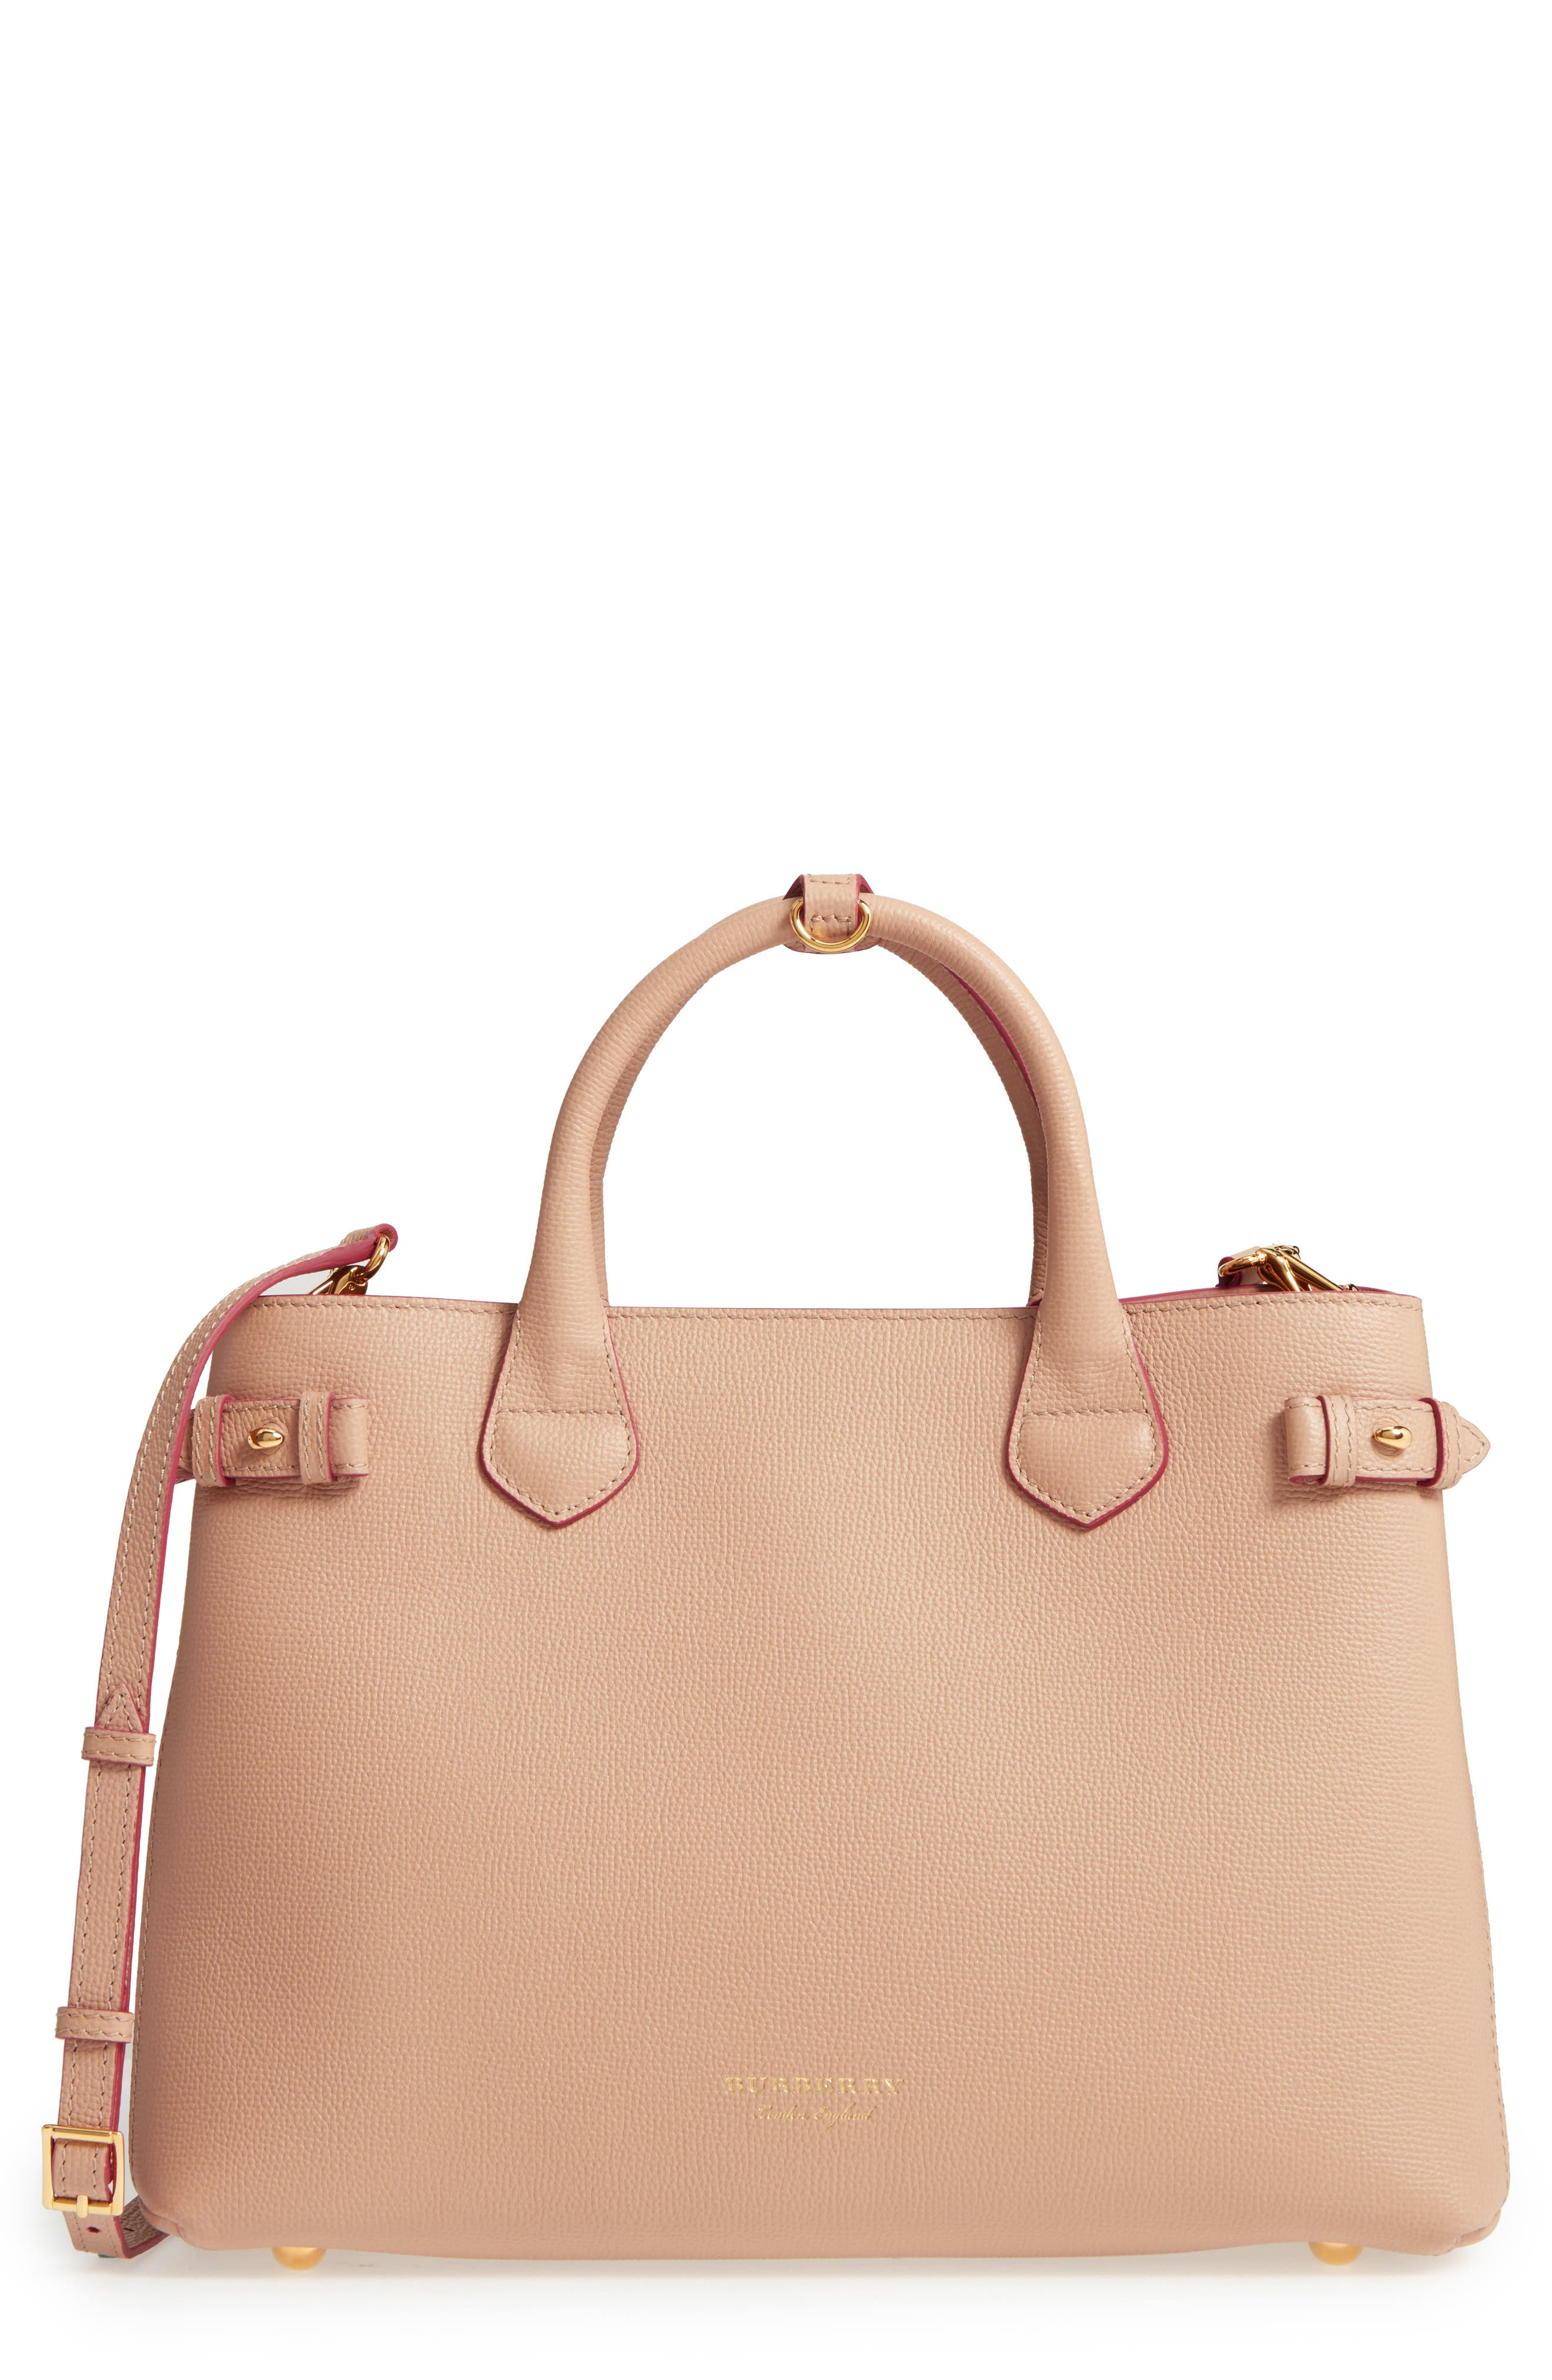 Main Image - Burberry Medium Banner Check Leather Tote